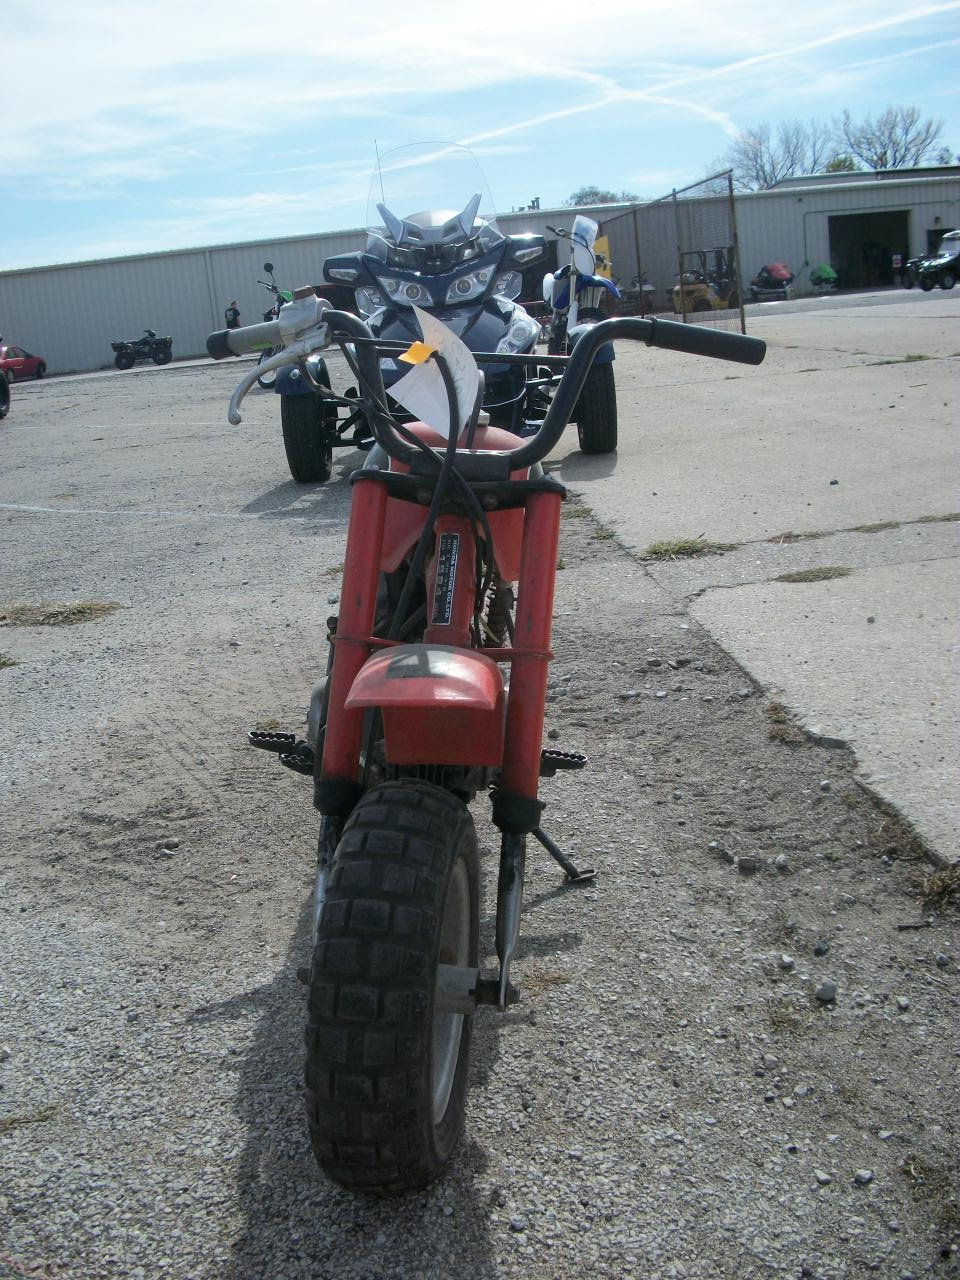 RED 1984 HONDA Z50R Z 50R for sale in Decatur, IL Photo 2